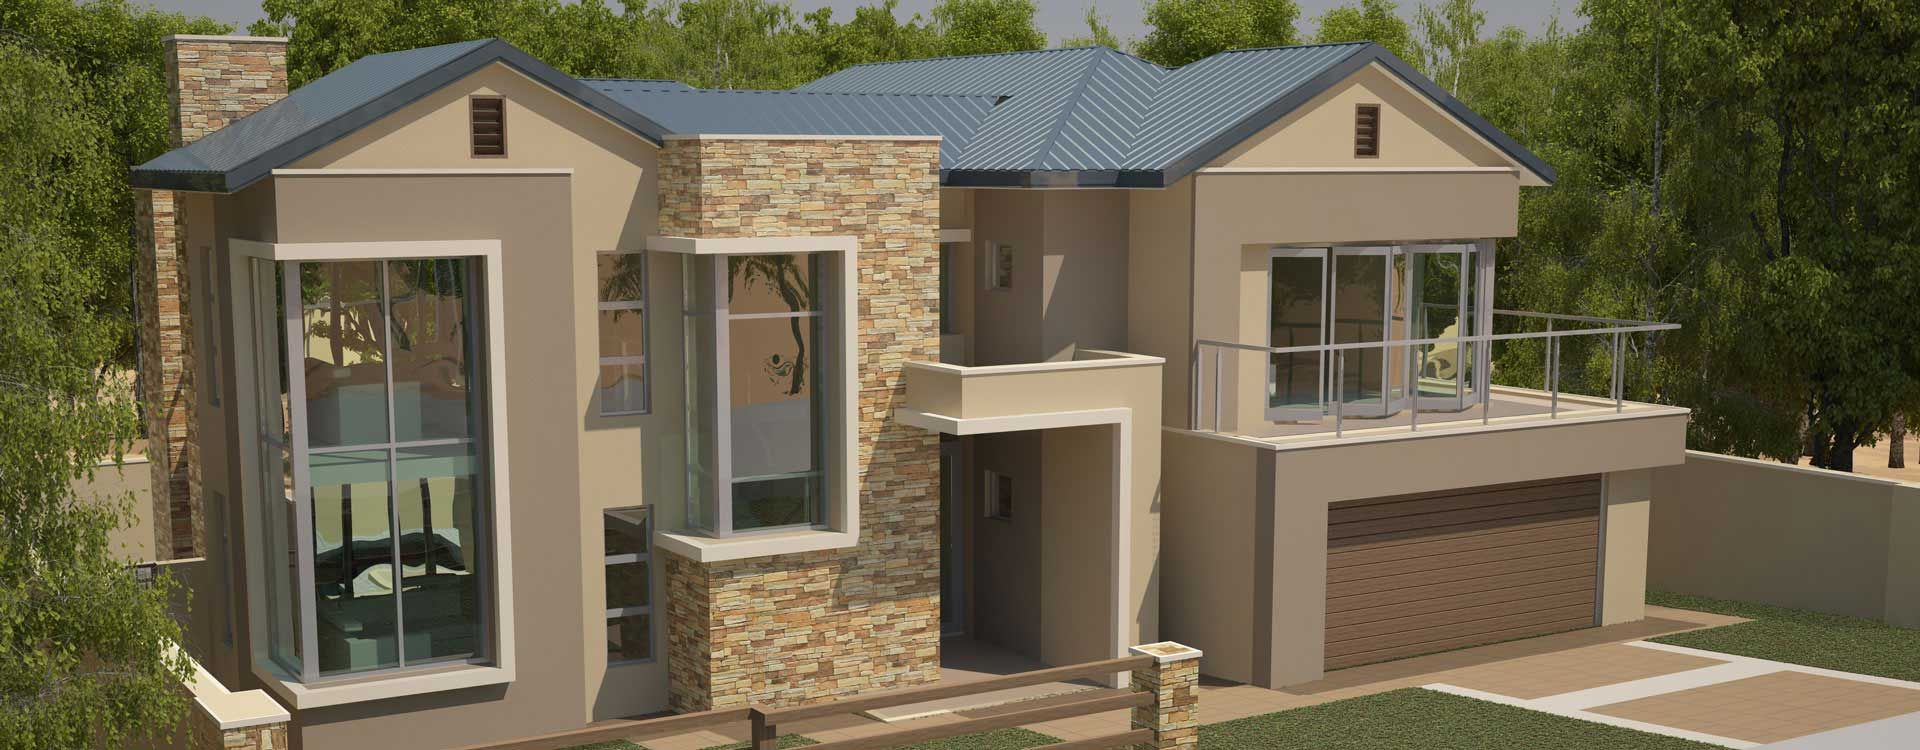 Modern 4 Bedroom House Designs Plans House Plans South Africa